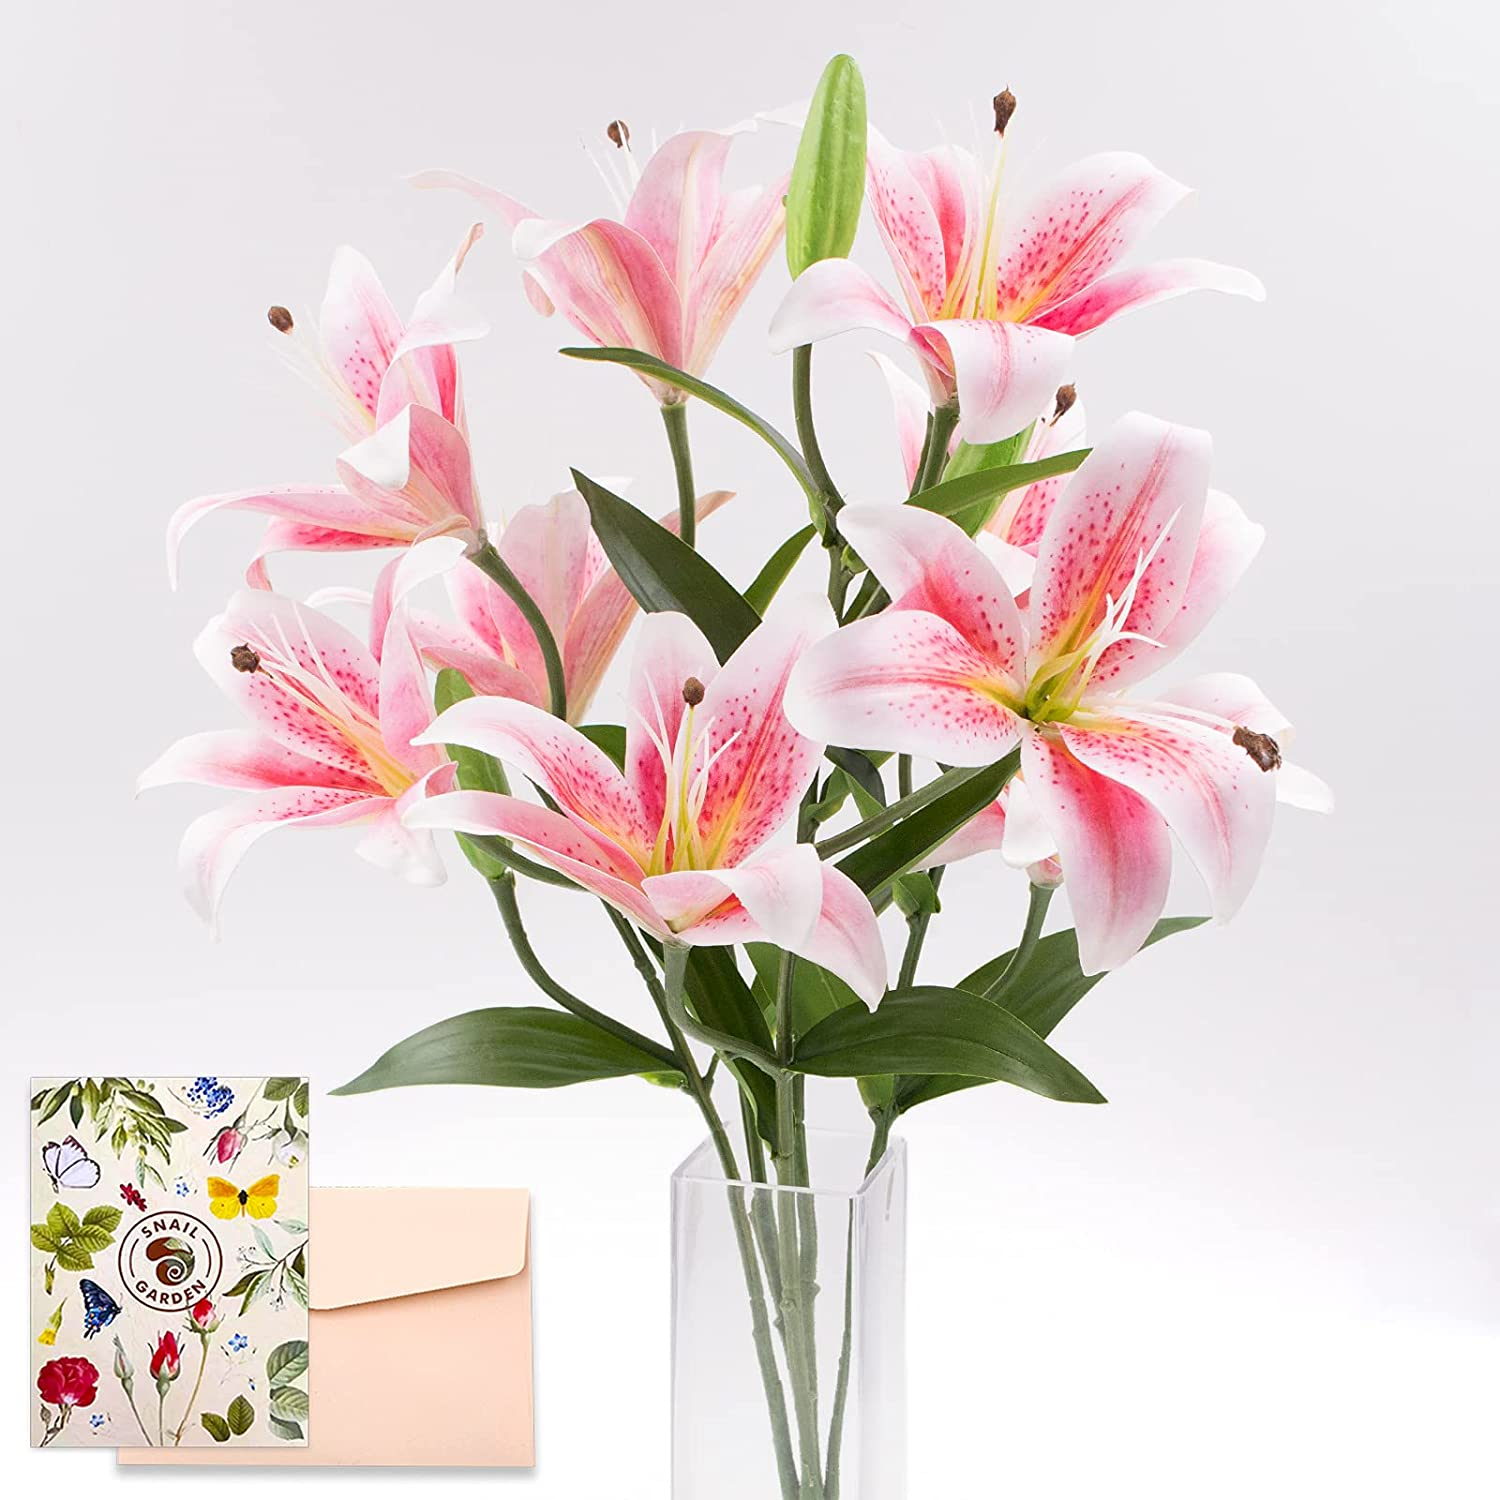 SNAIL GARDEN 12 Heads Artifical Lily Flowers, Long Stem Artificial Lilies with 9 Heads Full Bloom Lily & 3 Lily Buds-Faux Tiger Lily Bouquets for Home Hotel Flower Arrangement Party Decor(Pink White)